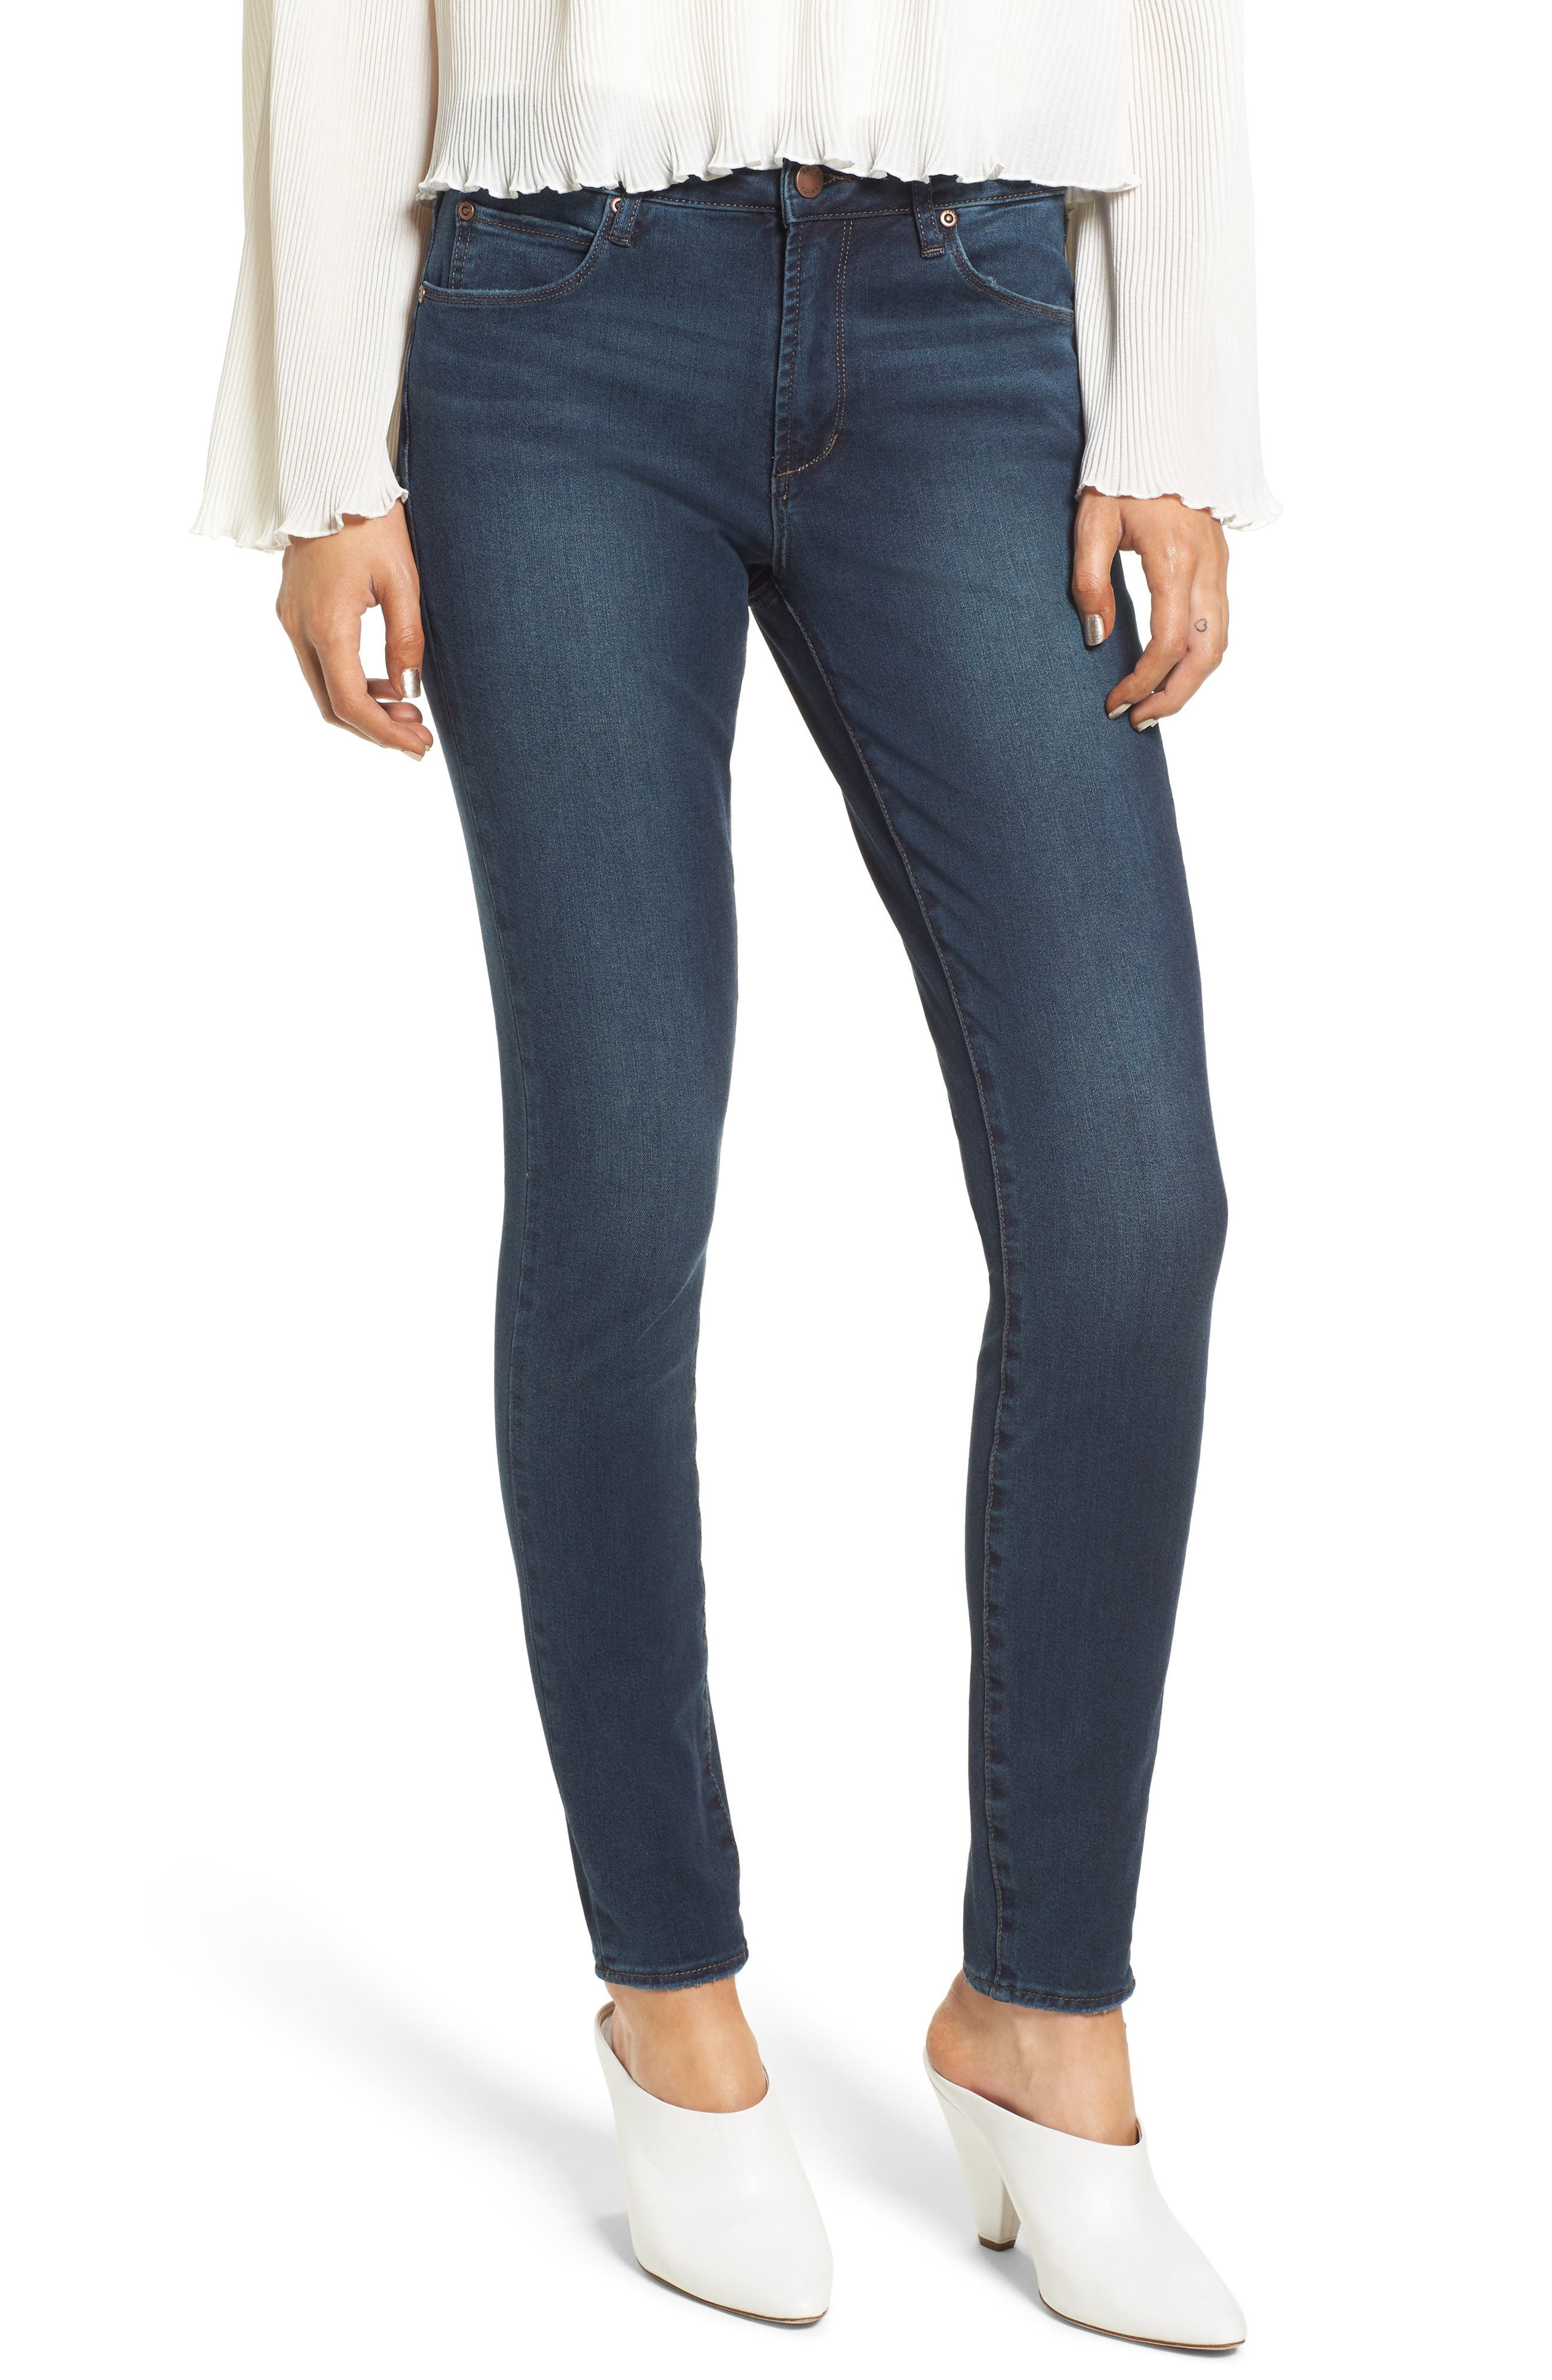 Alternate Image 1 Selected - Leith Skinny Jeans (Medium Wash)